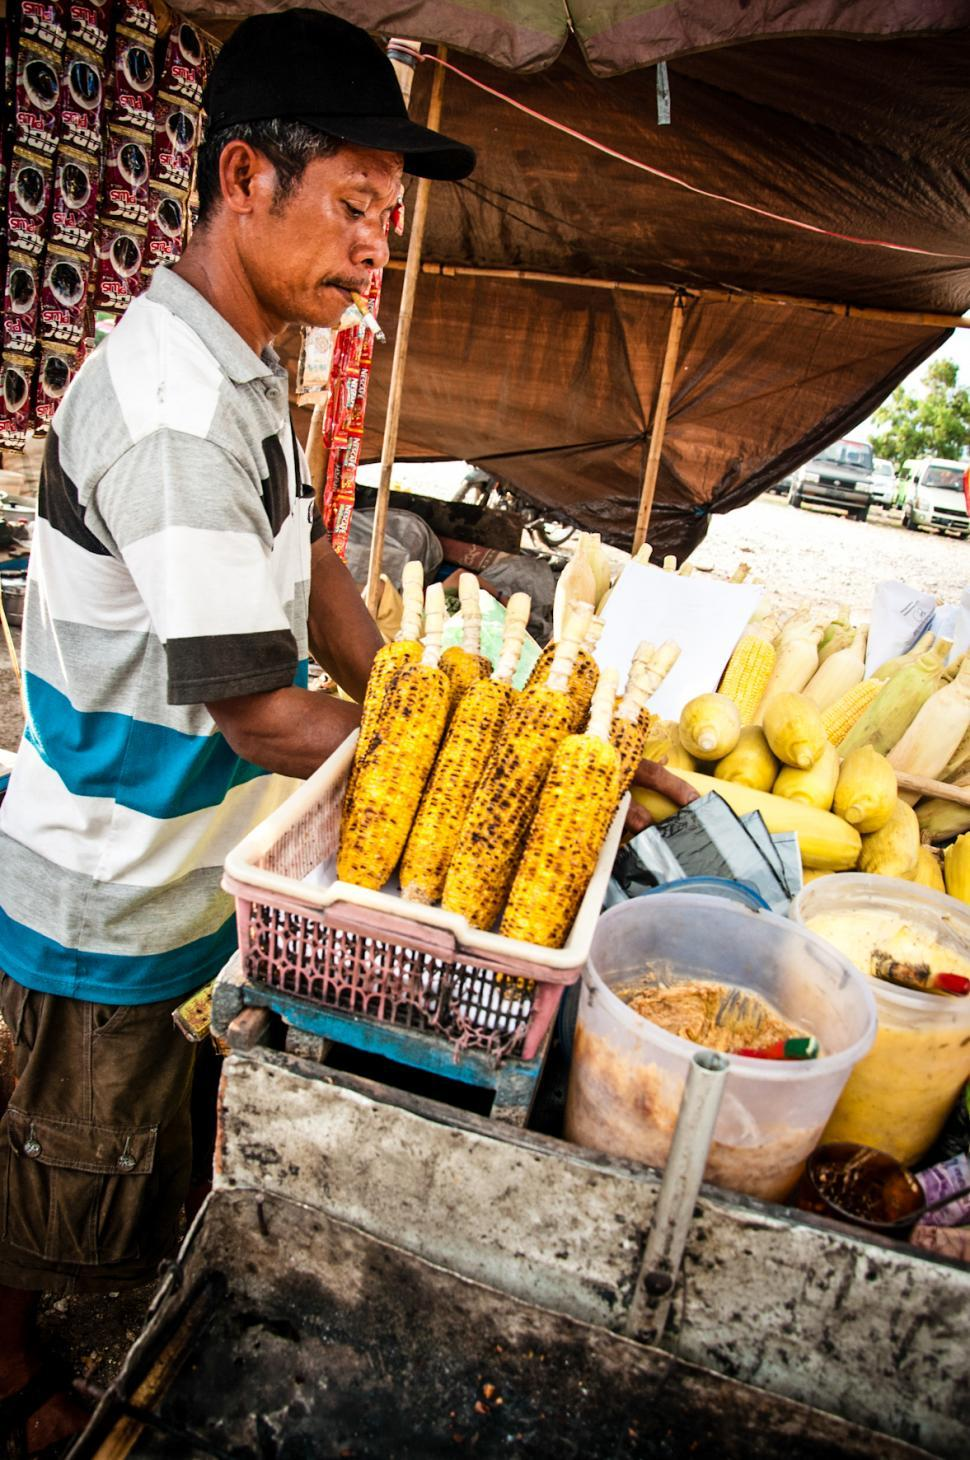 Download Free Stock Photo of street vendor selling corn on the street